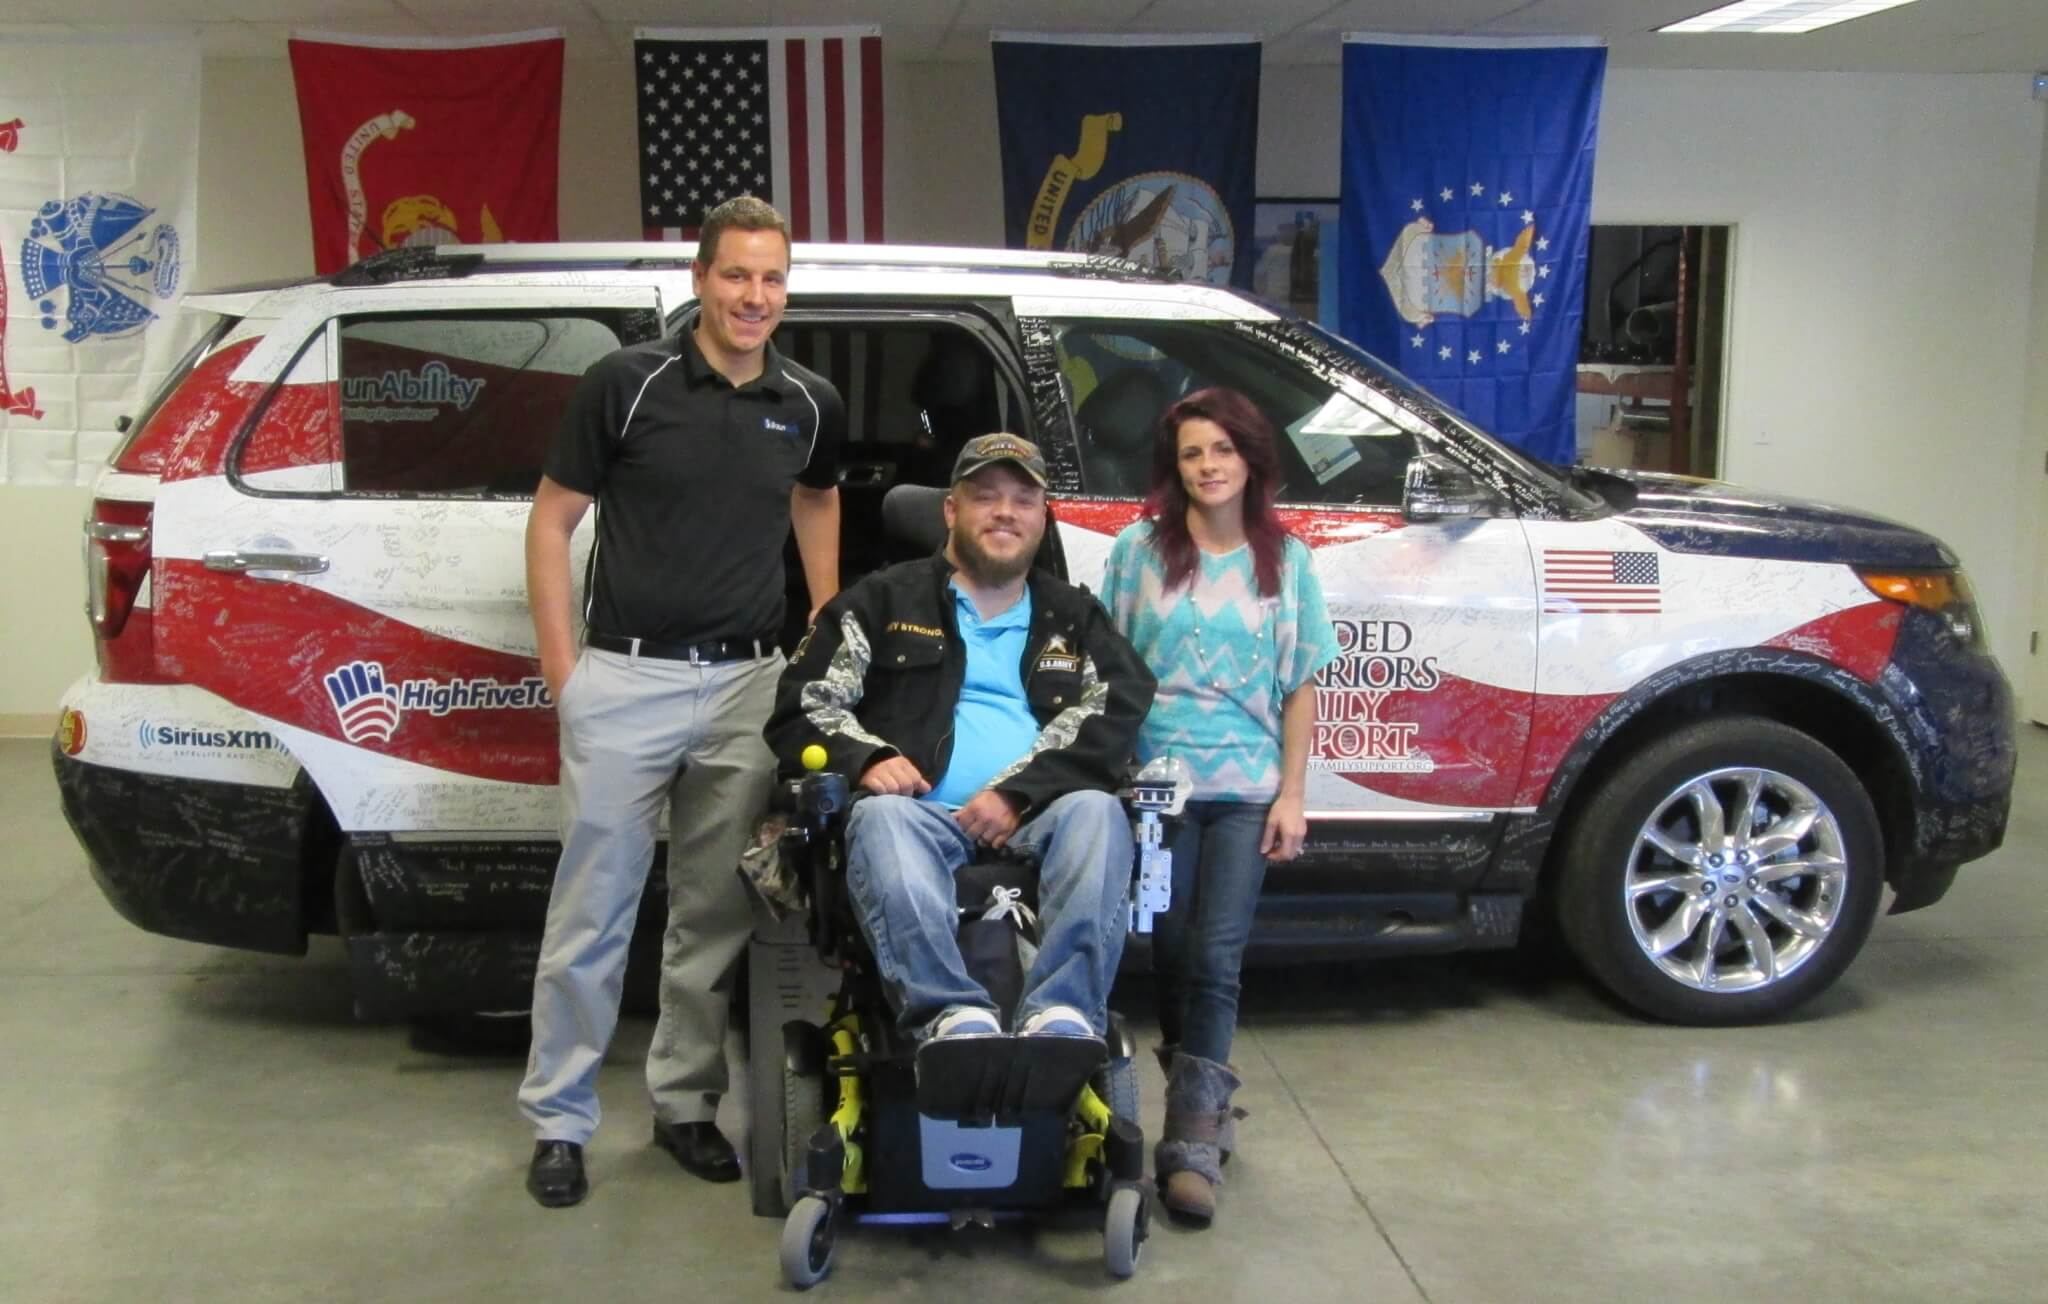 BraunAbility MXV donation wounded warrior donation mobility freedom